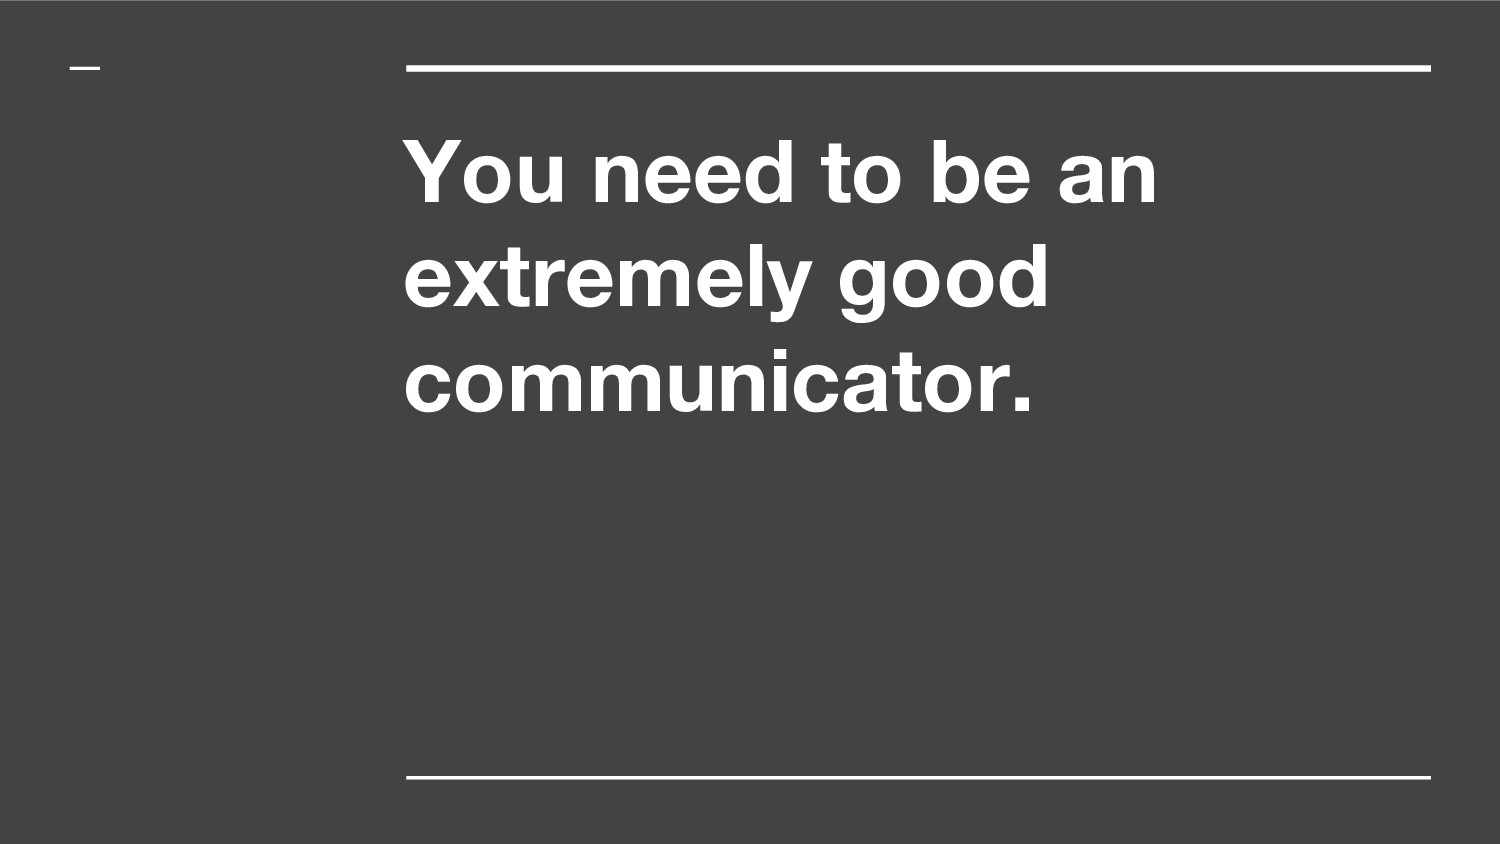 You need to be an extremely good communicator.